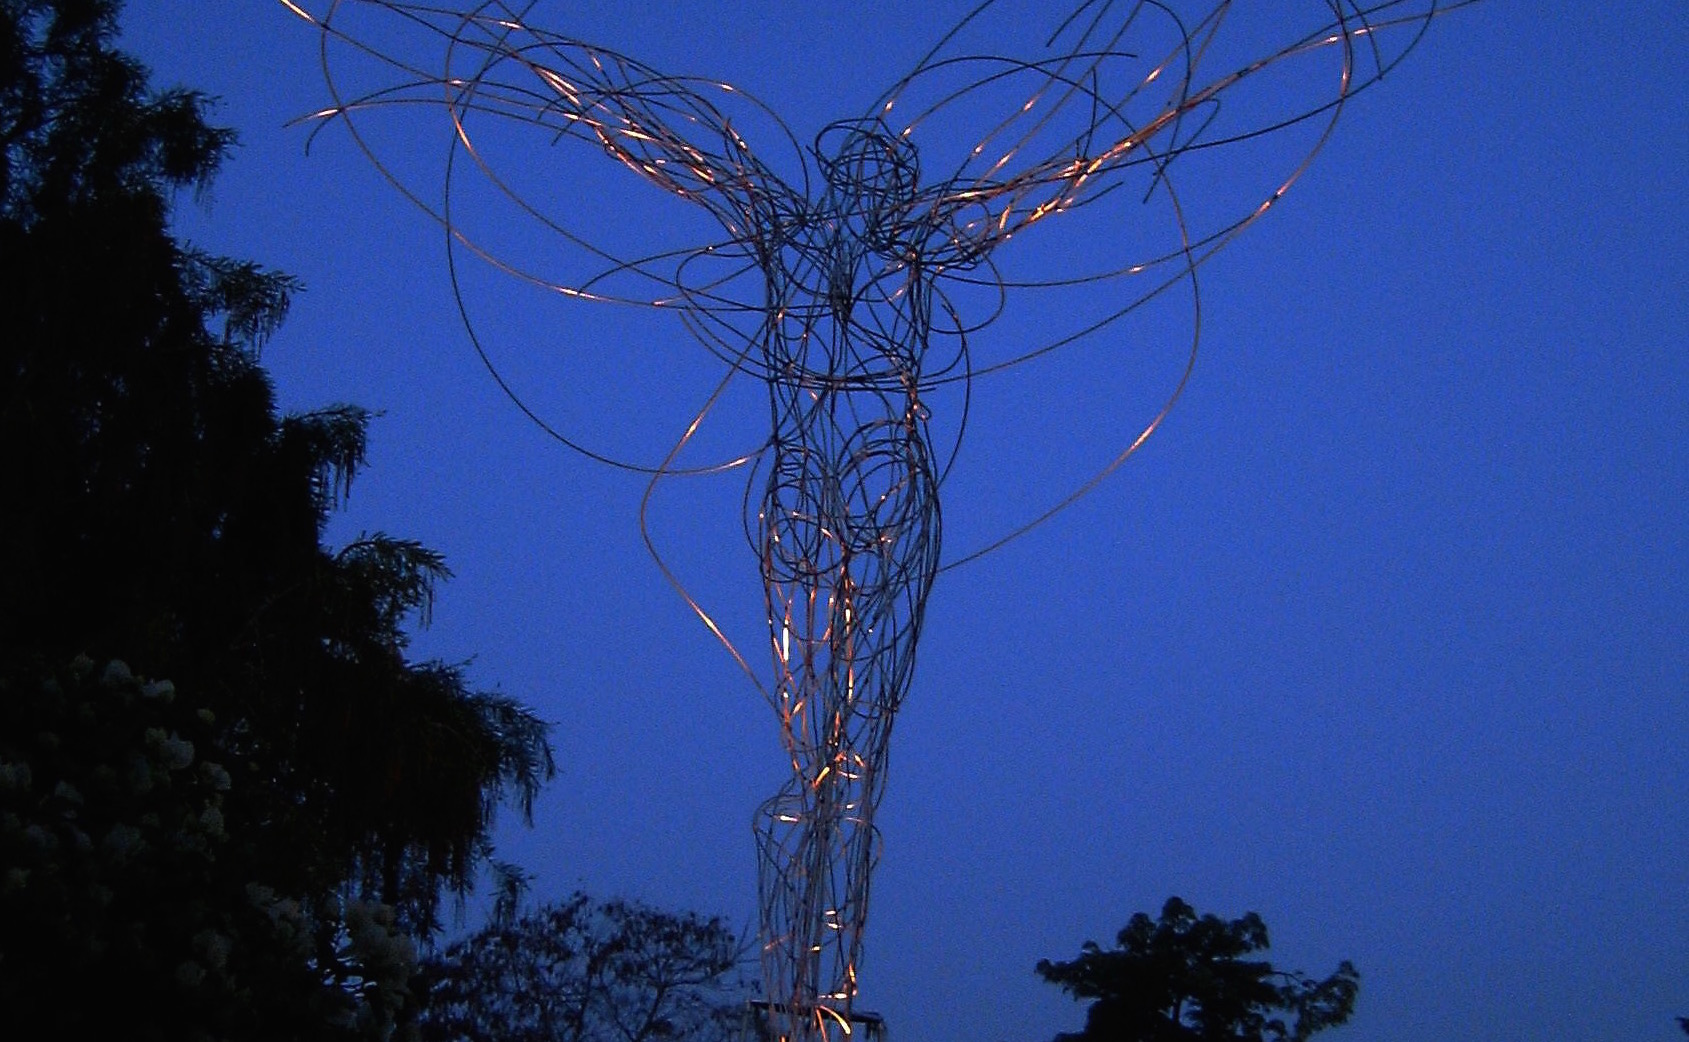 """Space_Dance"", stainless steel, 280 x 150 x 130 cm, Rehovot/Israel, 2005"